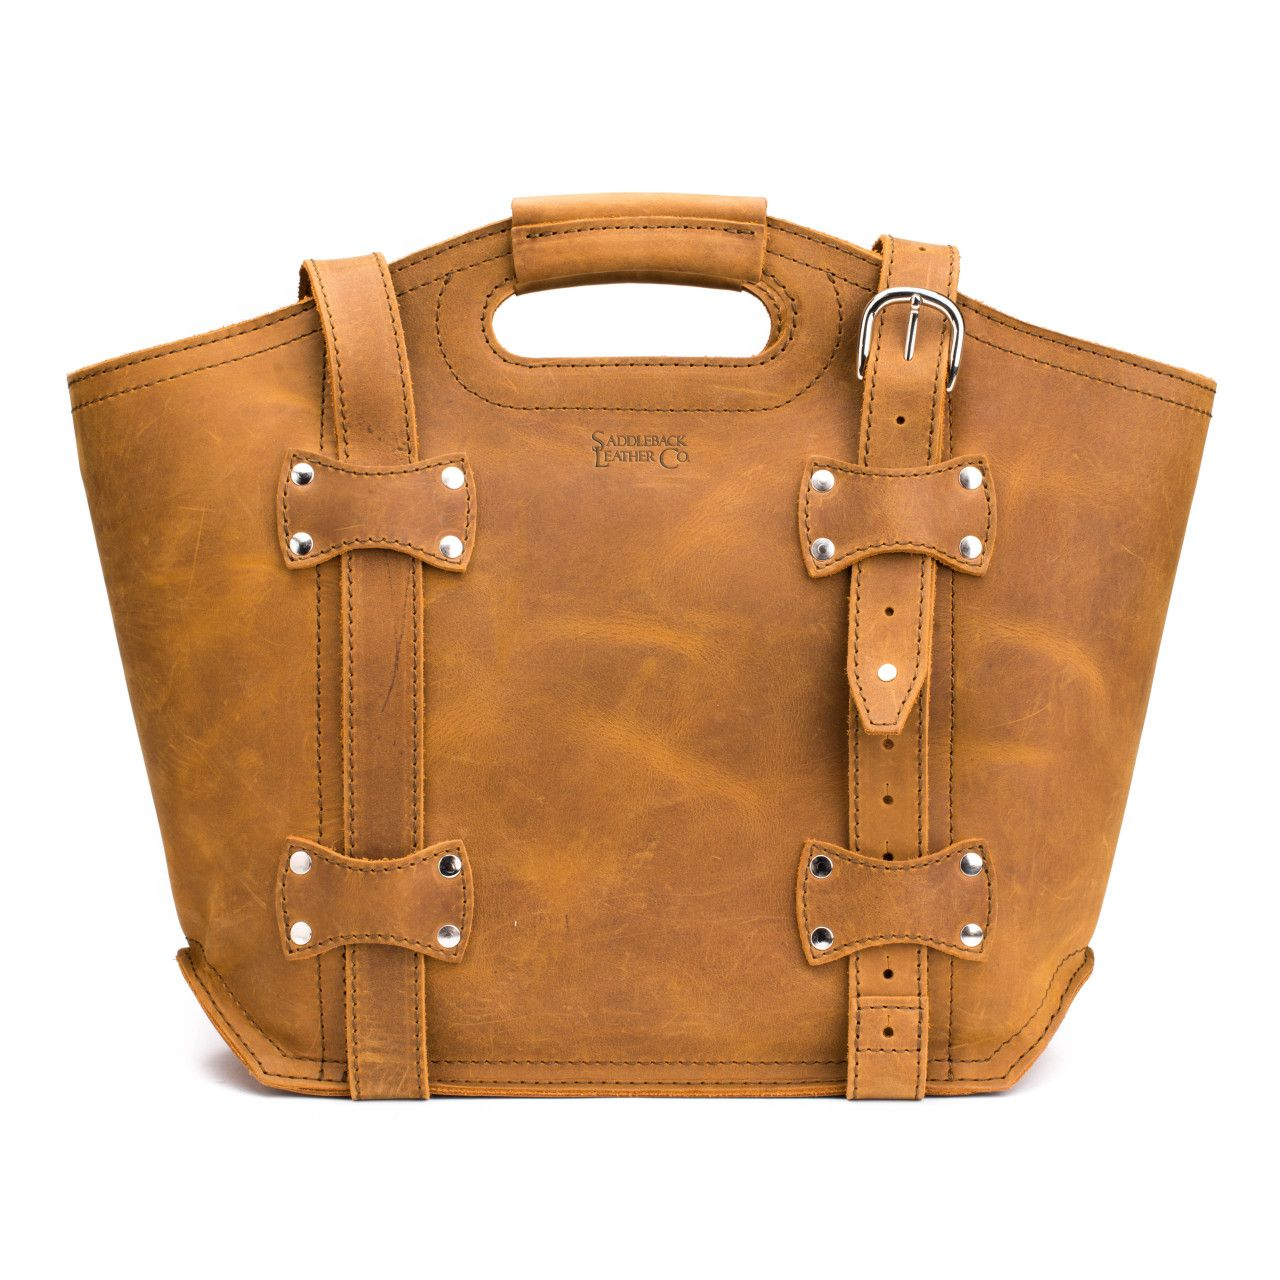 premium leather tote bag large in tobacco leather